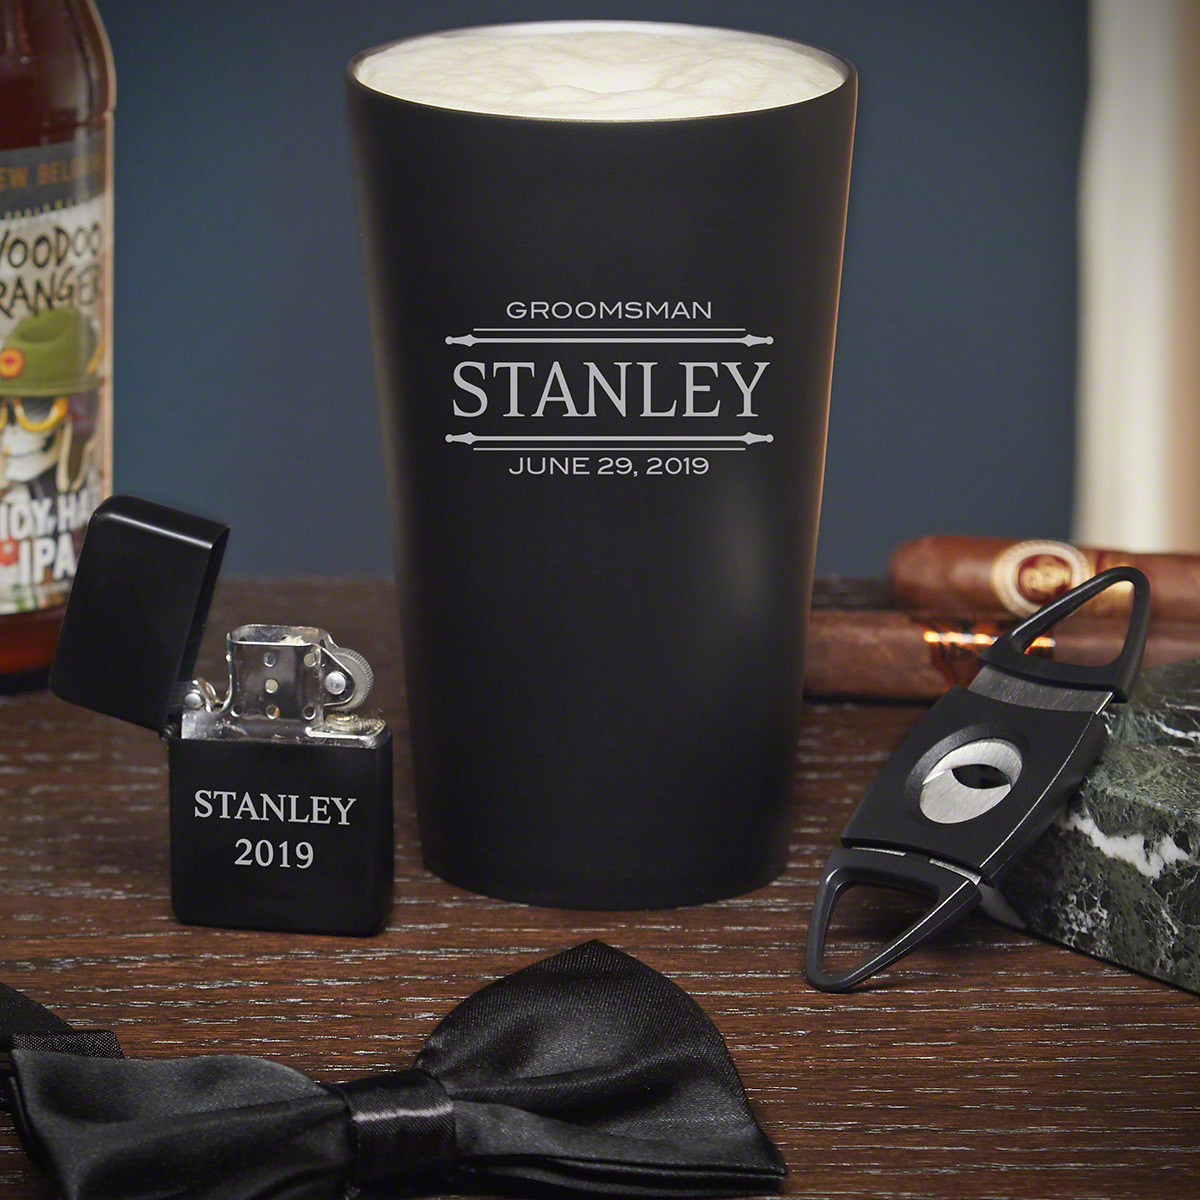 You want to ask your buddy to be your best man for your upcoming wedding, but you don't know how. This best man gift set is the perfect way! With a personalized pint glass, lighter, cigar cutter, and a bow tie, this set has everything your friend needs #best